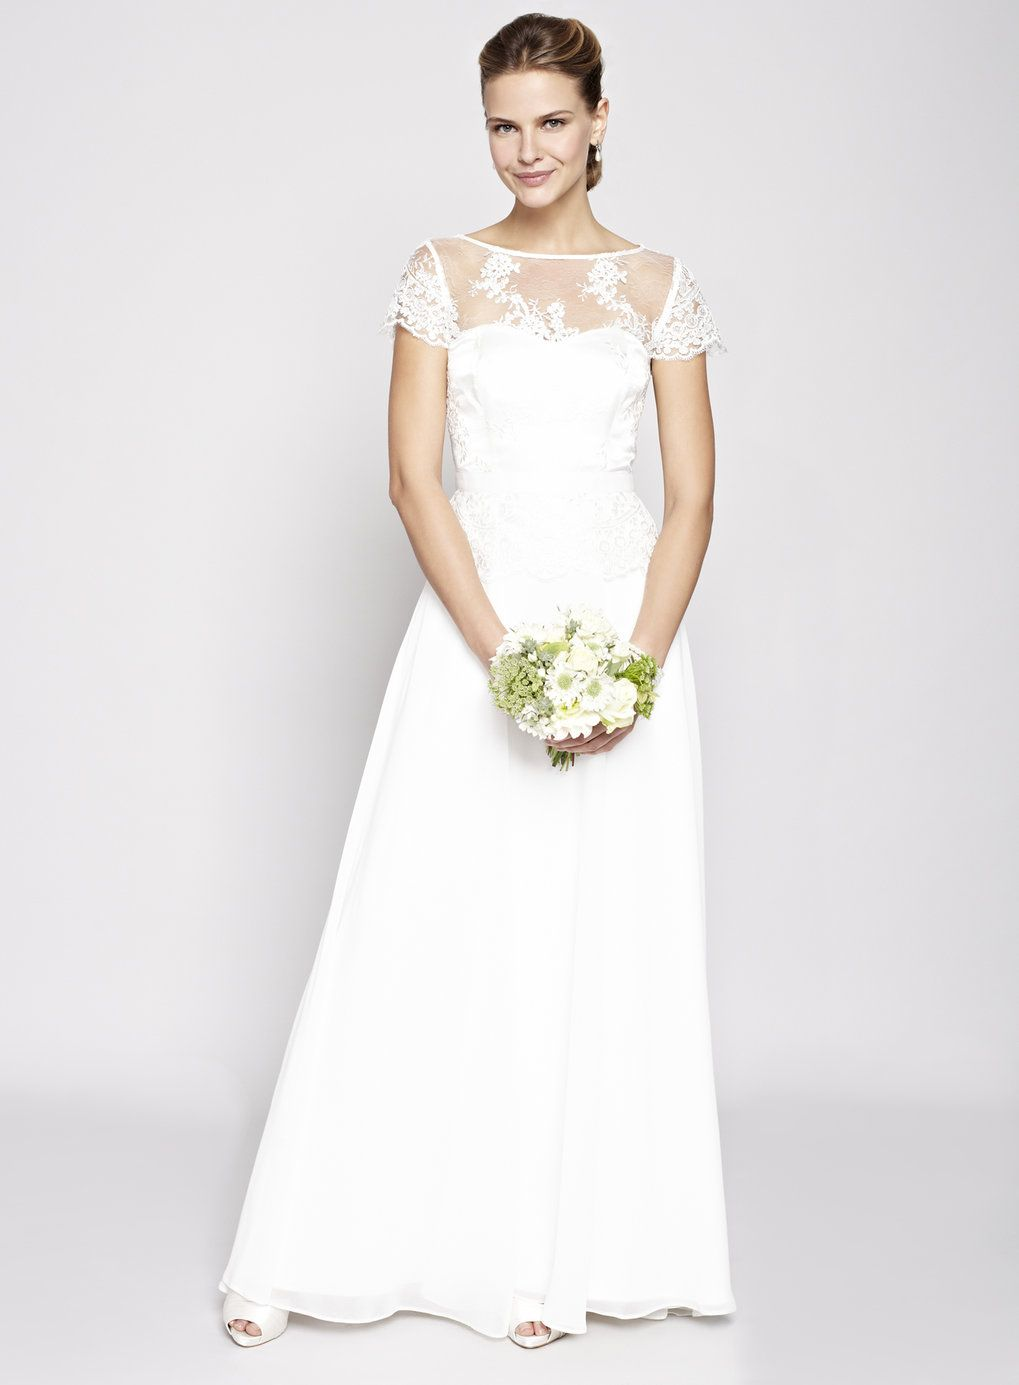 Exelent Bhs Wedding Dresses In Store Sketch - Colorful Wedding Dress ...